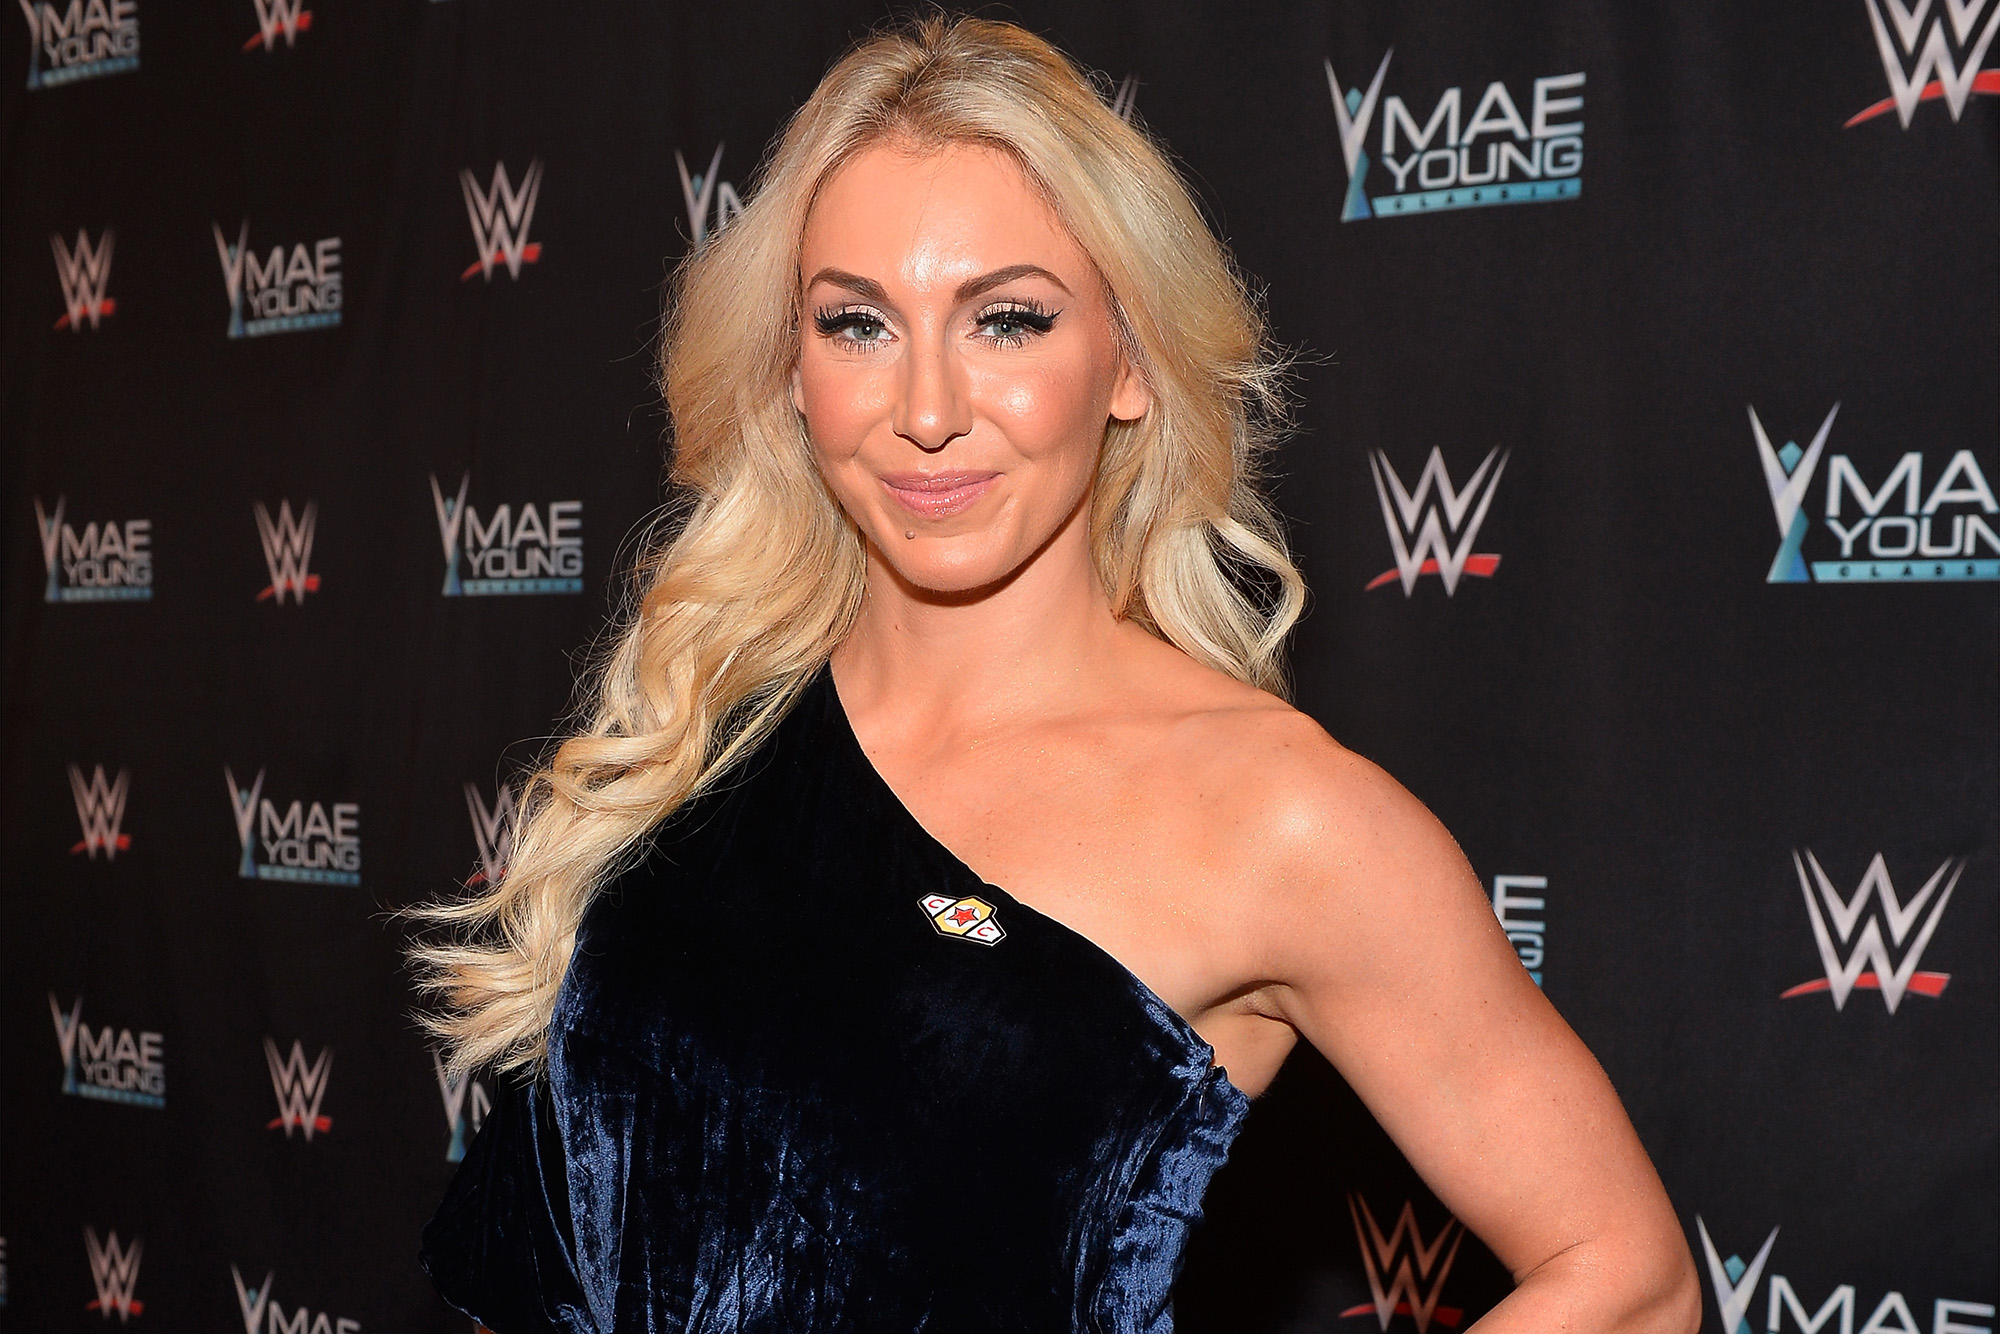 41 Hottest Charlotte Flair Bikini Pictures - Show Her Sexy